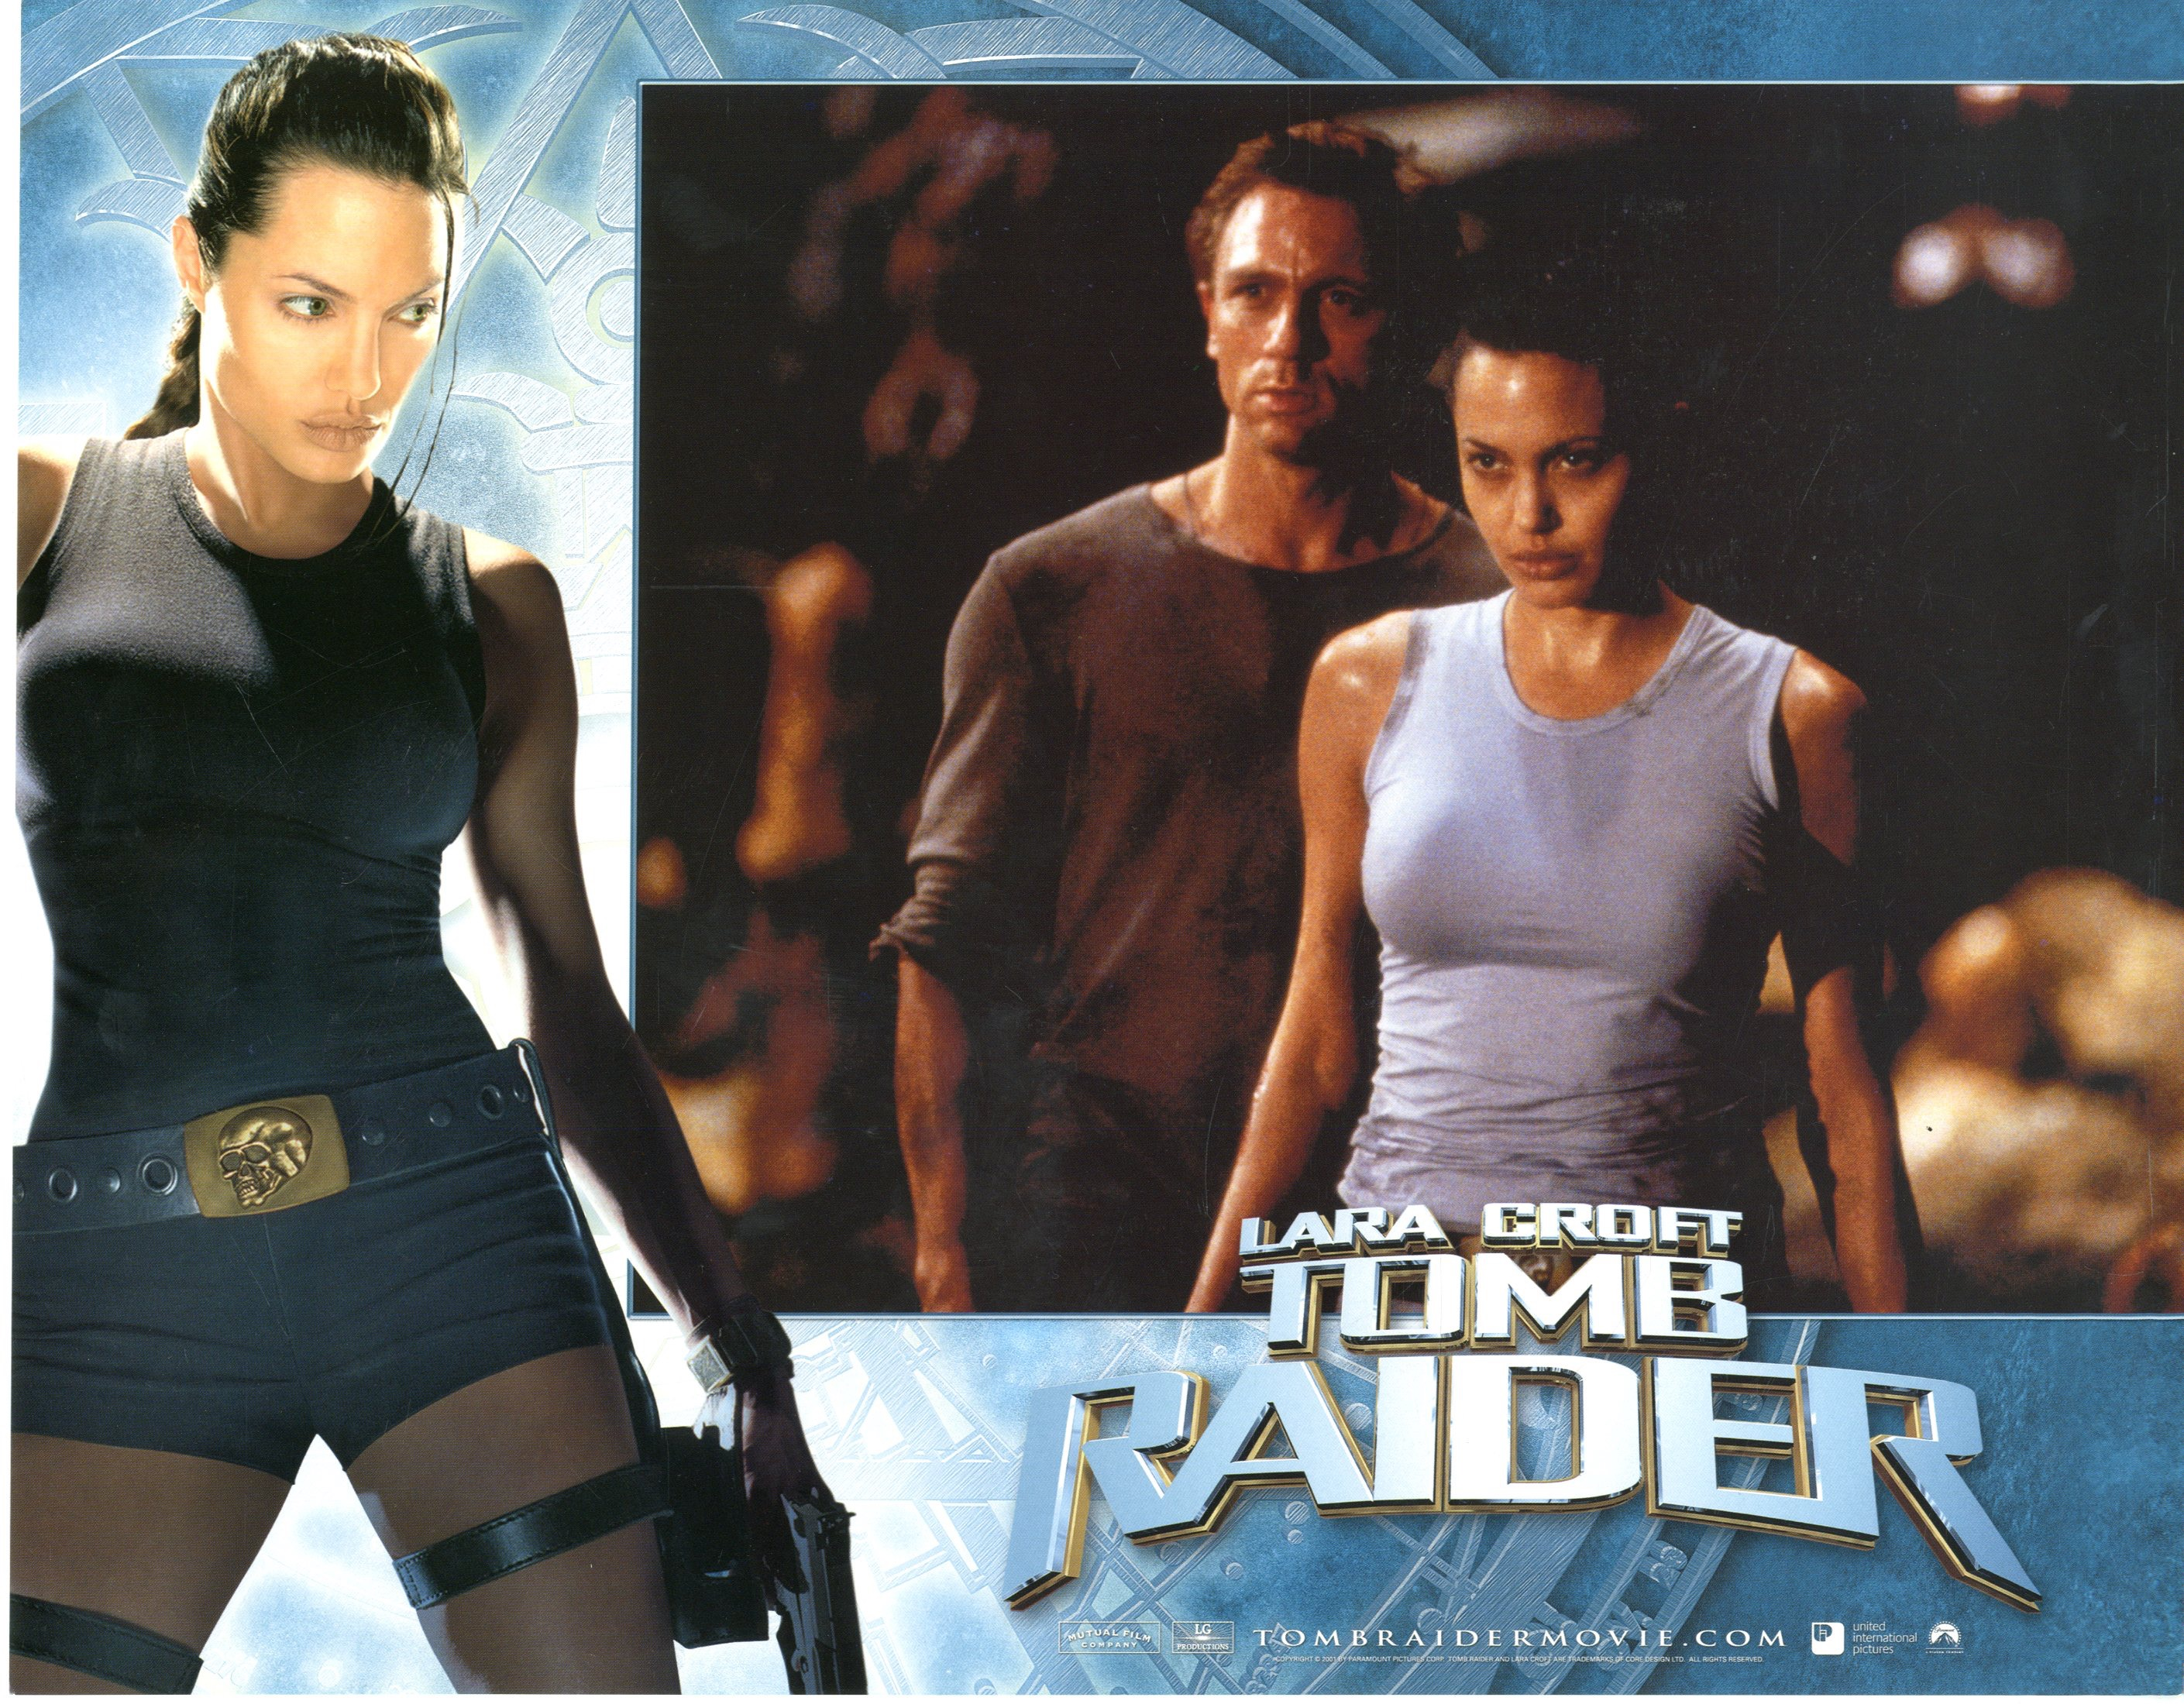 Lara Croft Tomb Raider 2001 Sold Details Four Color Comics